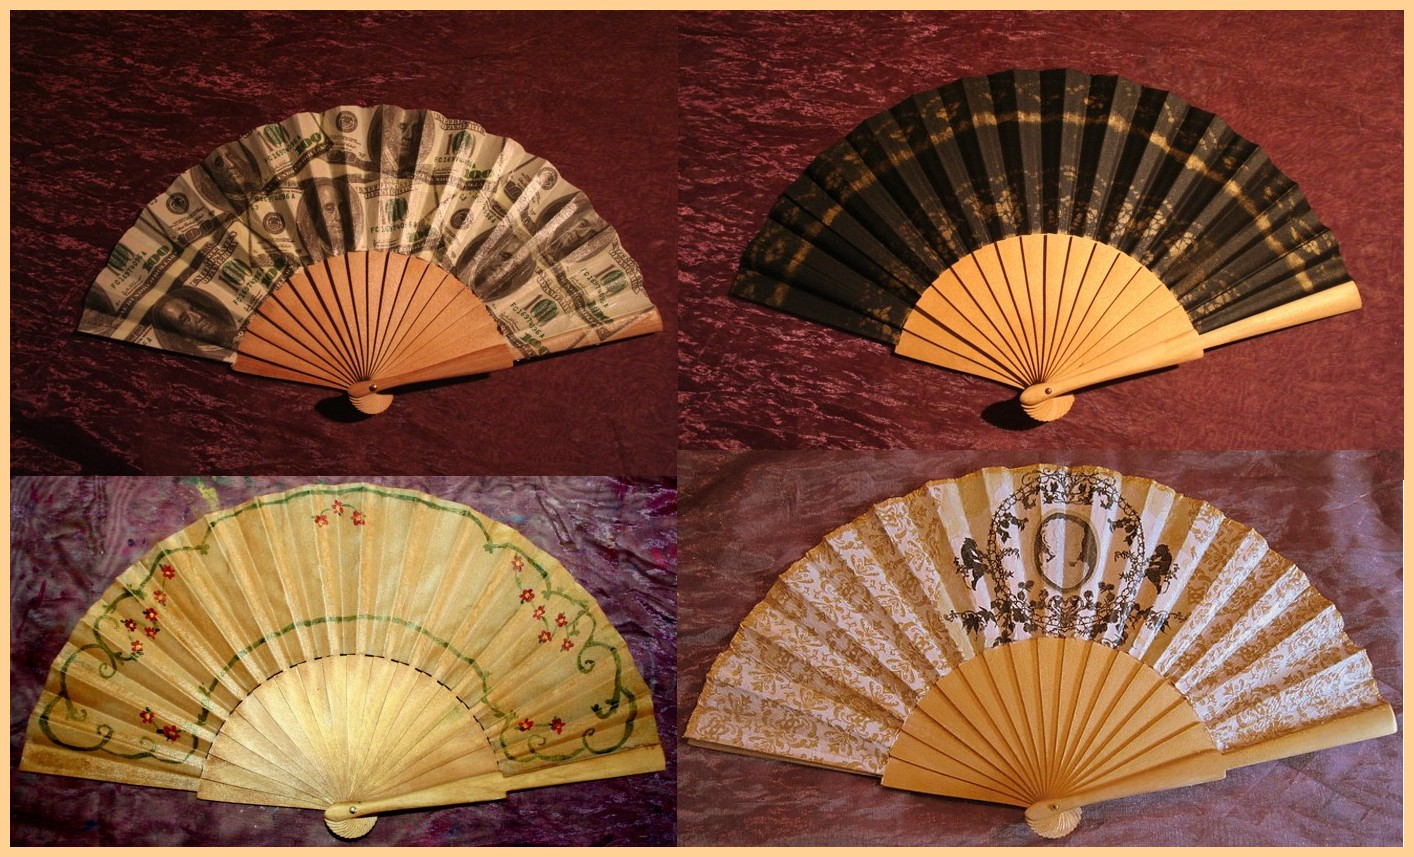 Make Your Own During A Work Or Order One Decorated Parasols Fans With Decoupage Hand Painted Gold Paint Flowers